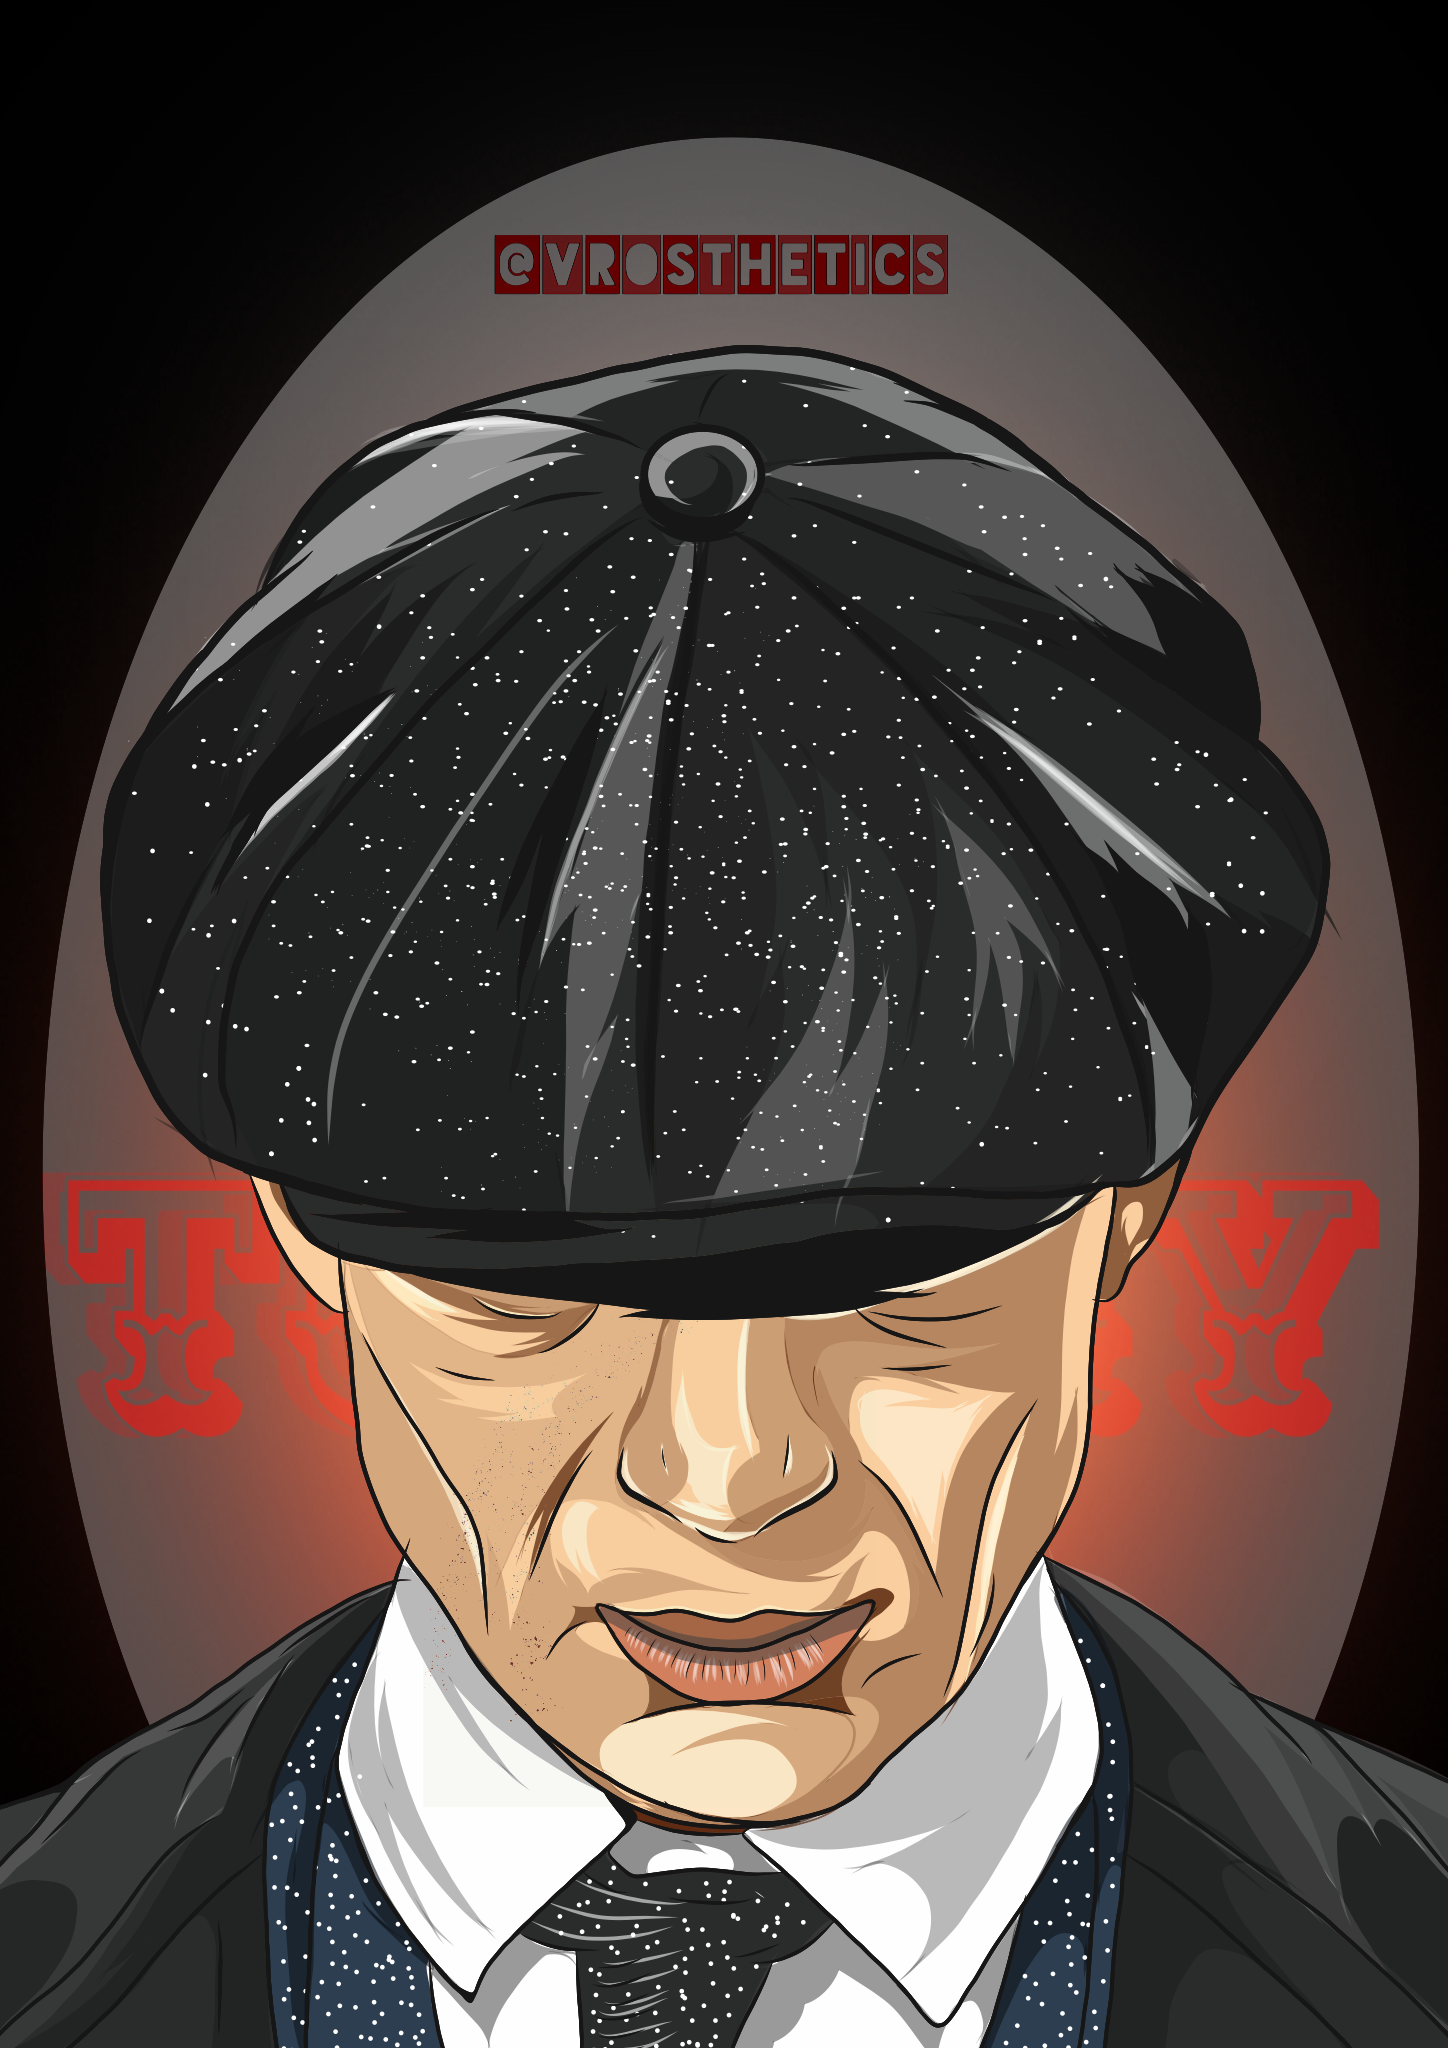 Vectoe artwork of Tommy Shelby